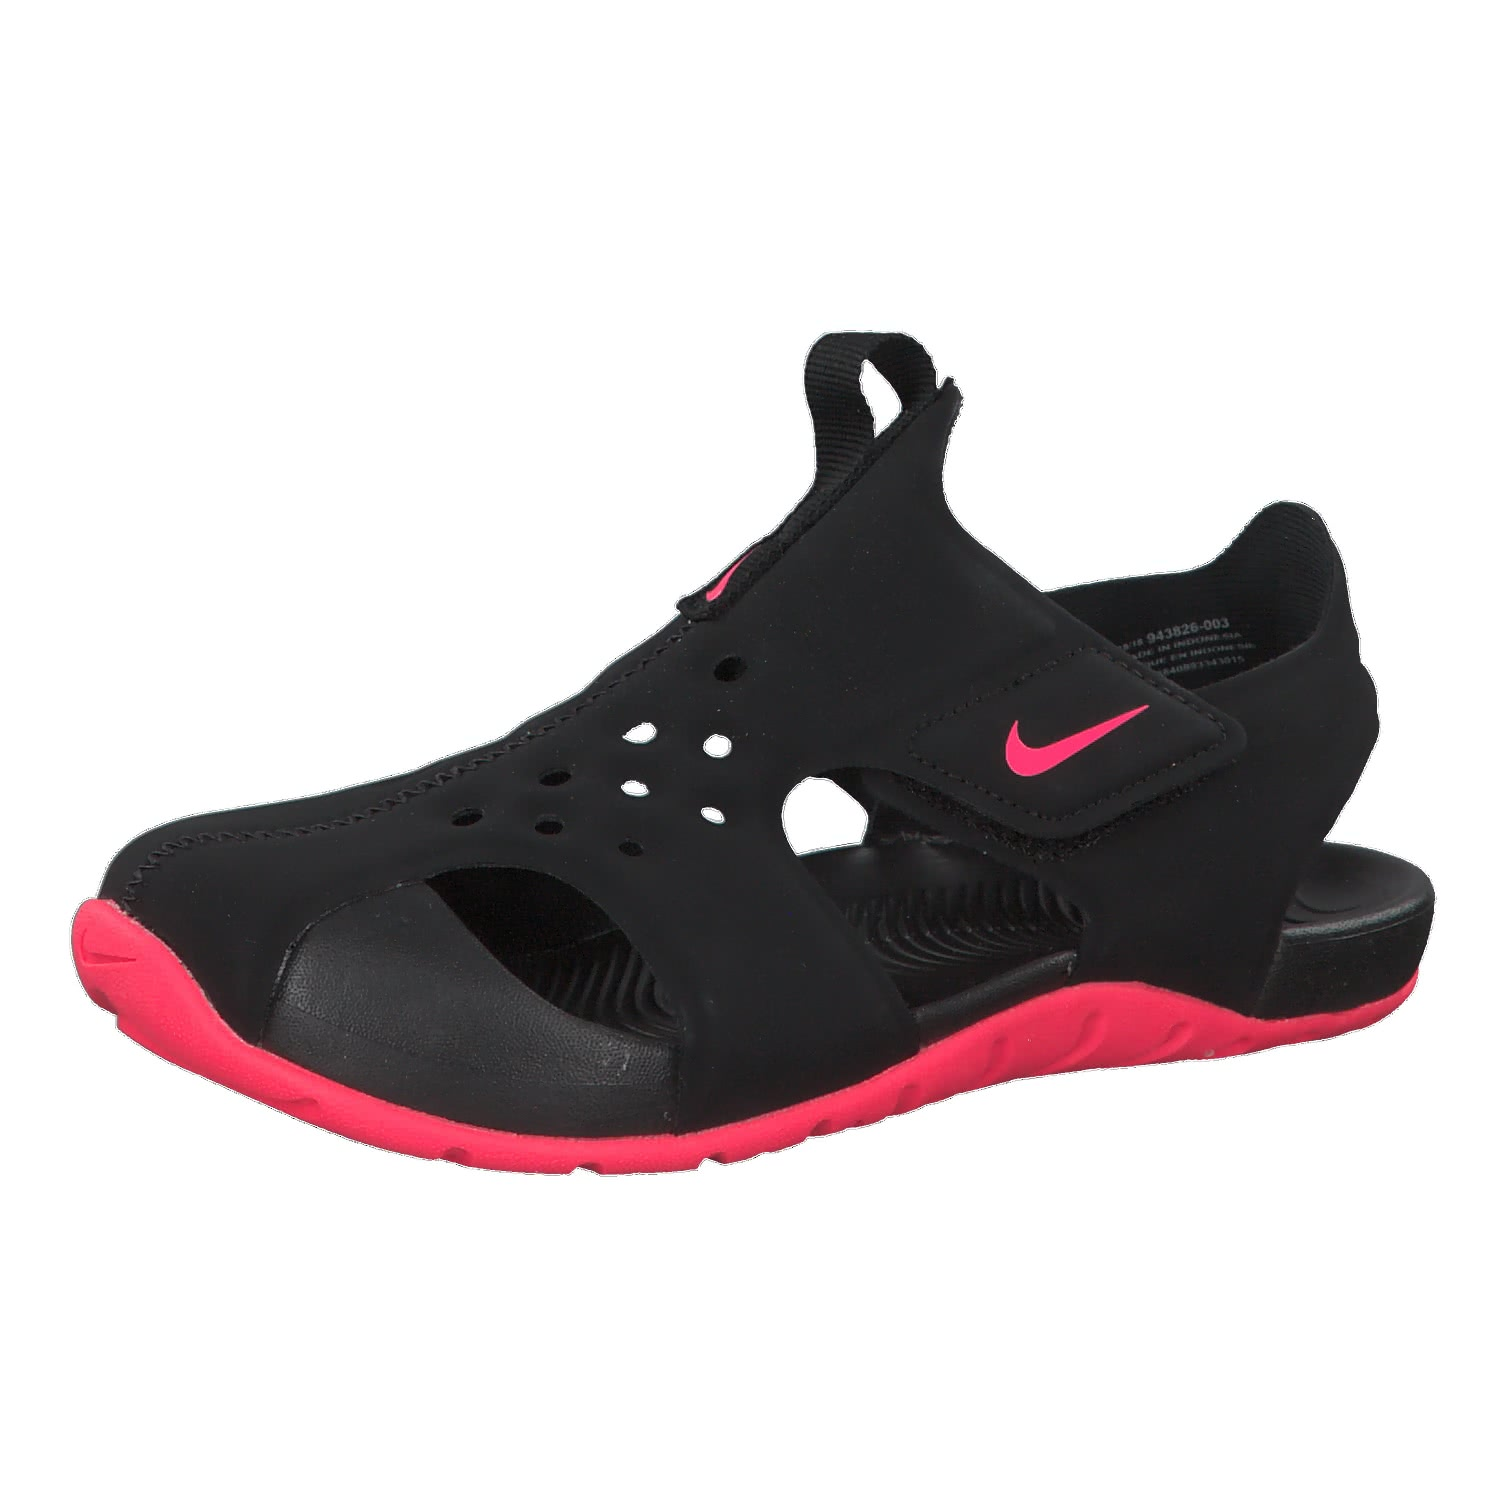 designer fashion dab61 8abc4 nike-sportswear-sunray-protect-2-(ps)-blackracer-pink-943826-003.jpg